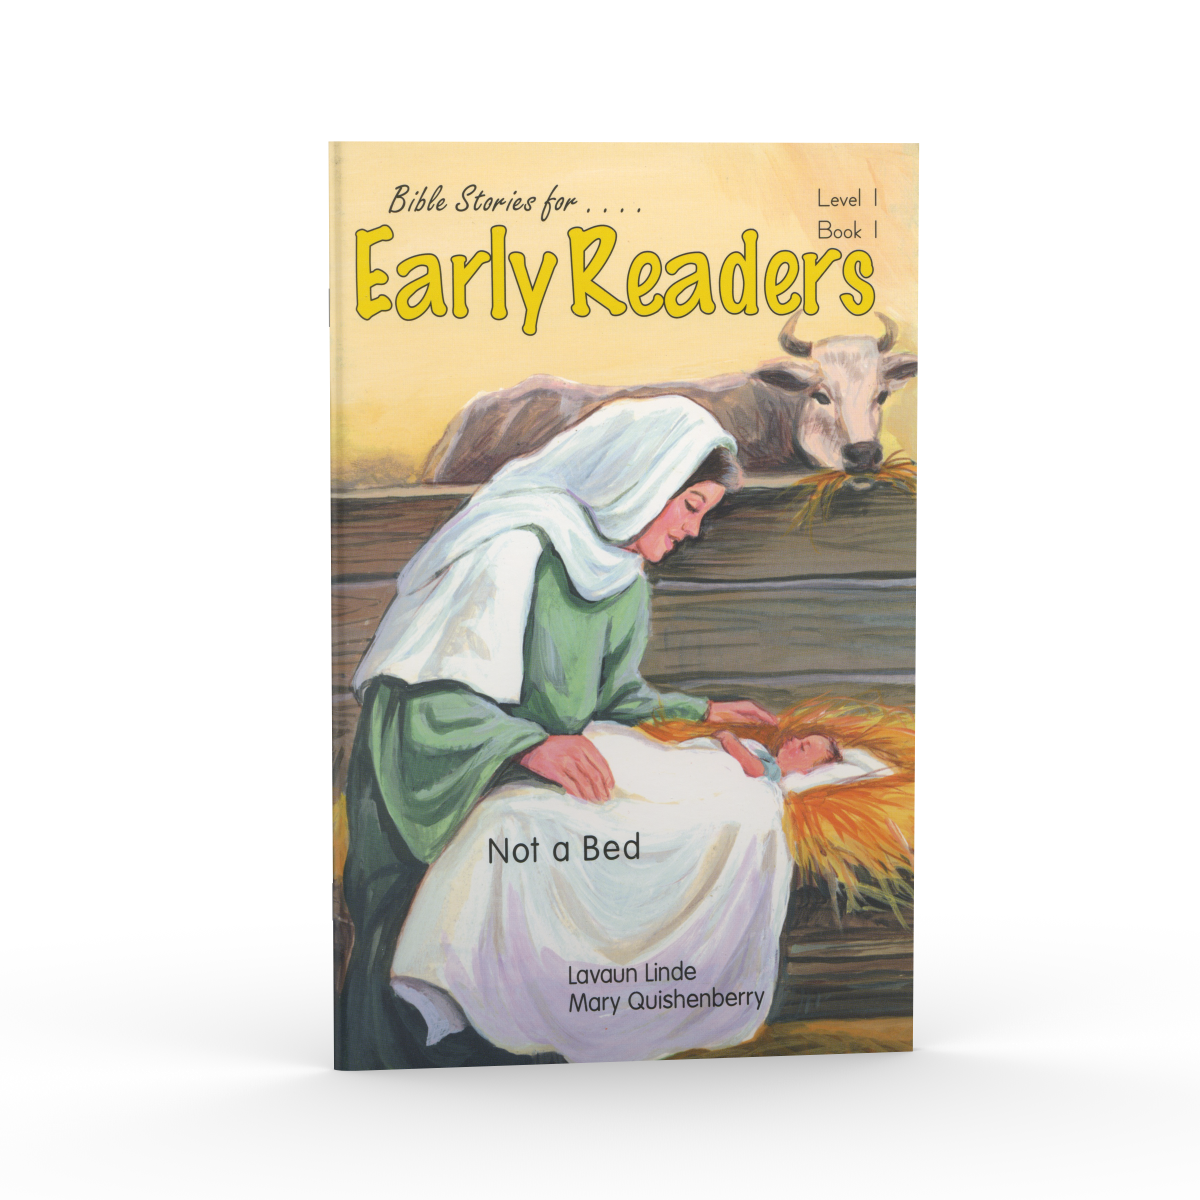 Not a Bed (Bible Stories for Early Readers – Level 1, Book 1)